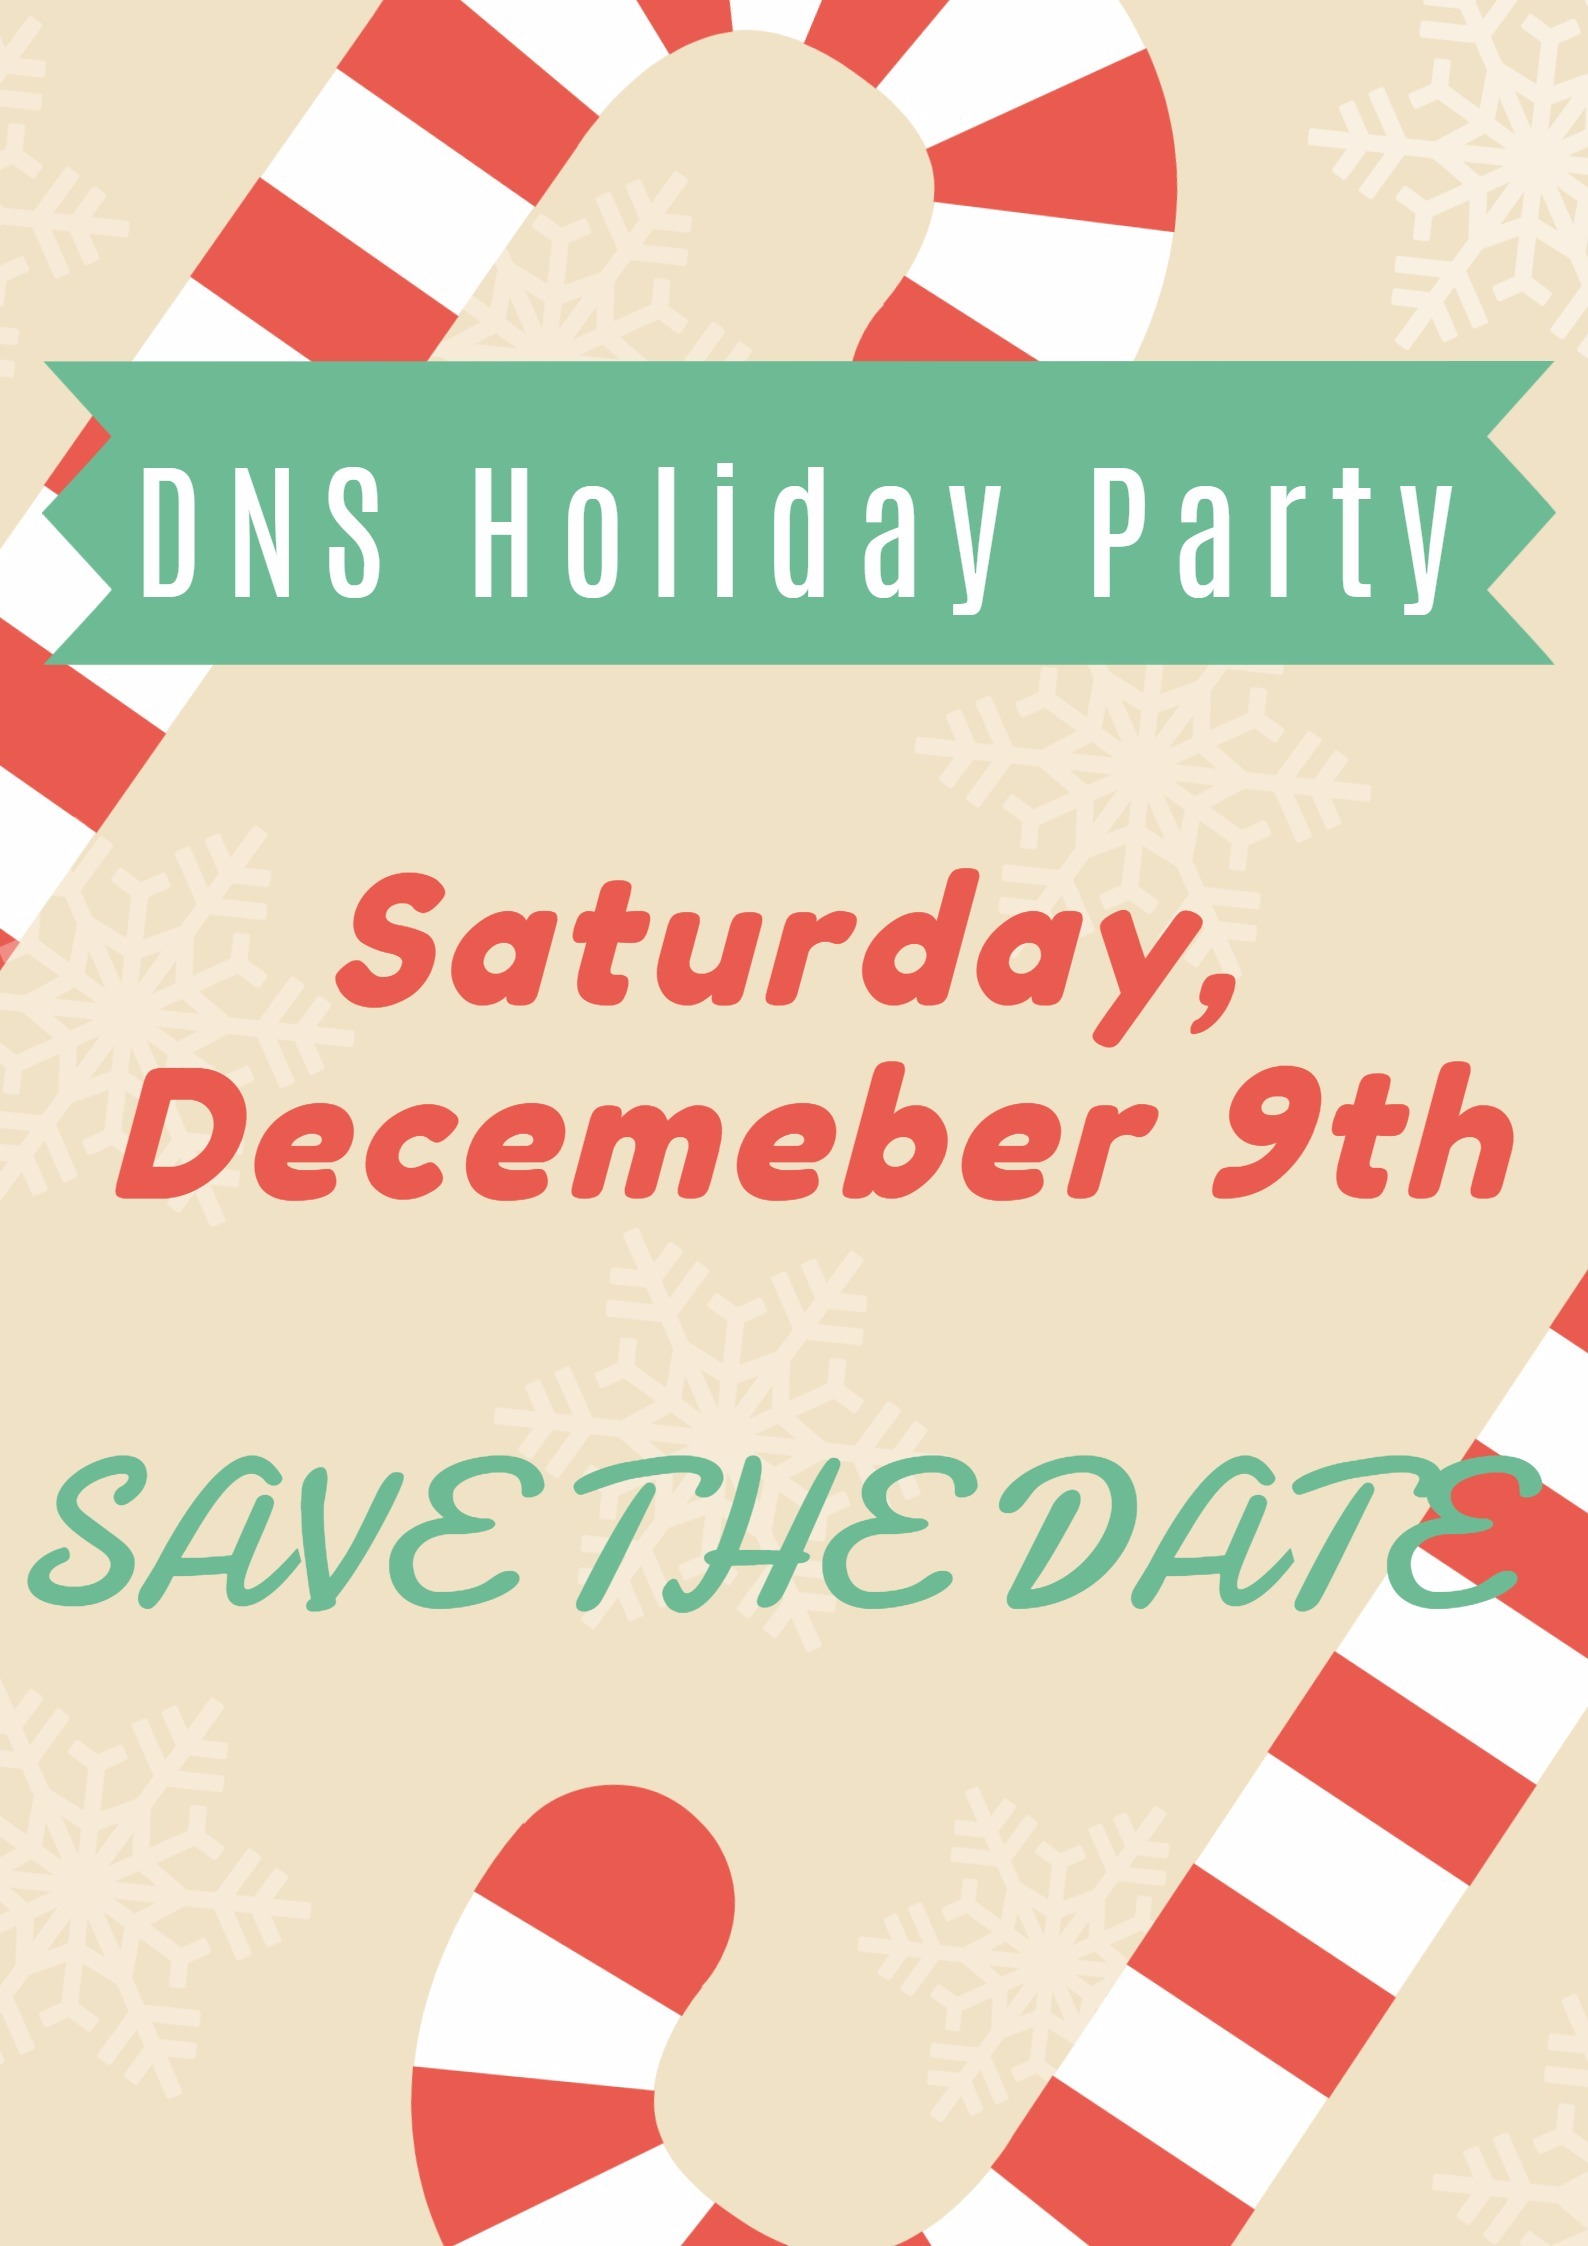 SaveTheDate - DNS Holiday Party1